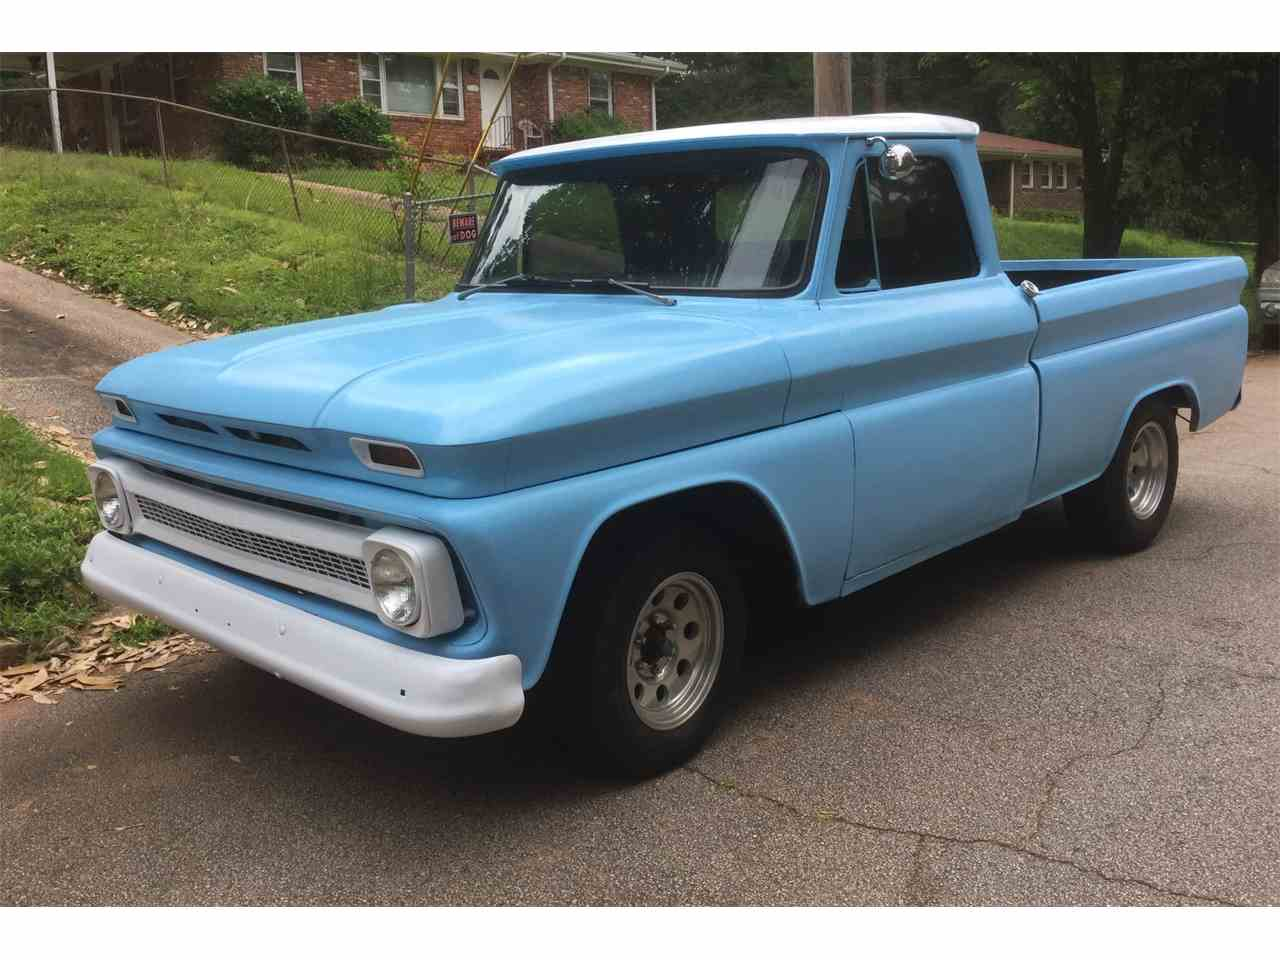 Truck 64 chevy truck for sale : 1964 Chevrolet C/K 10 for Sale on ClassicCars.com